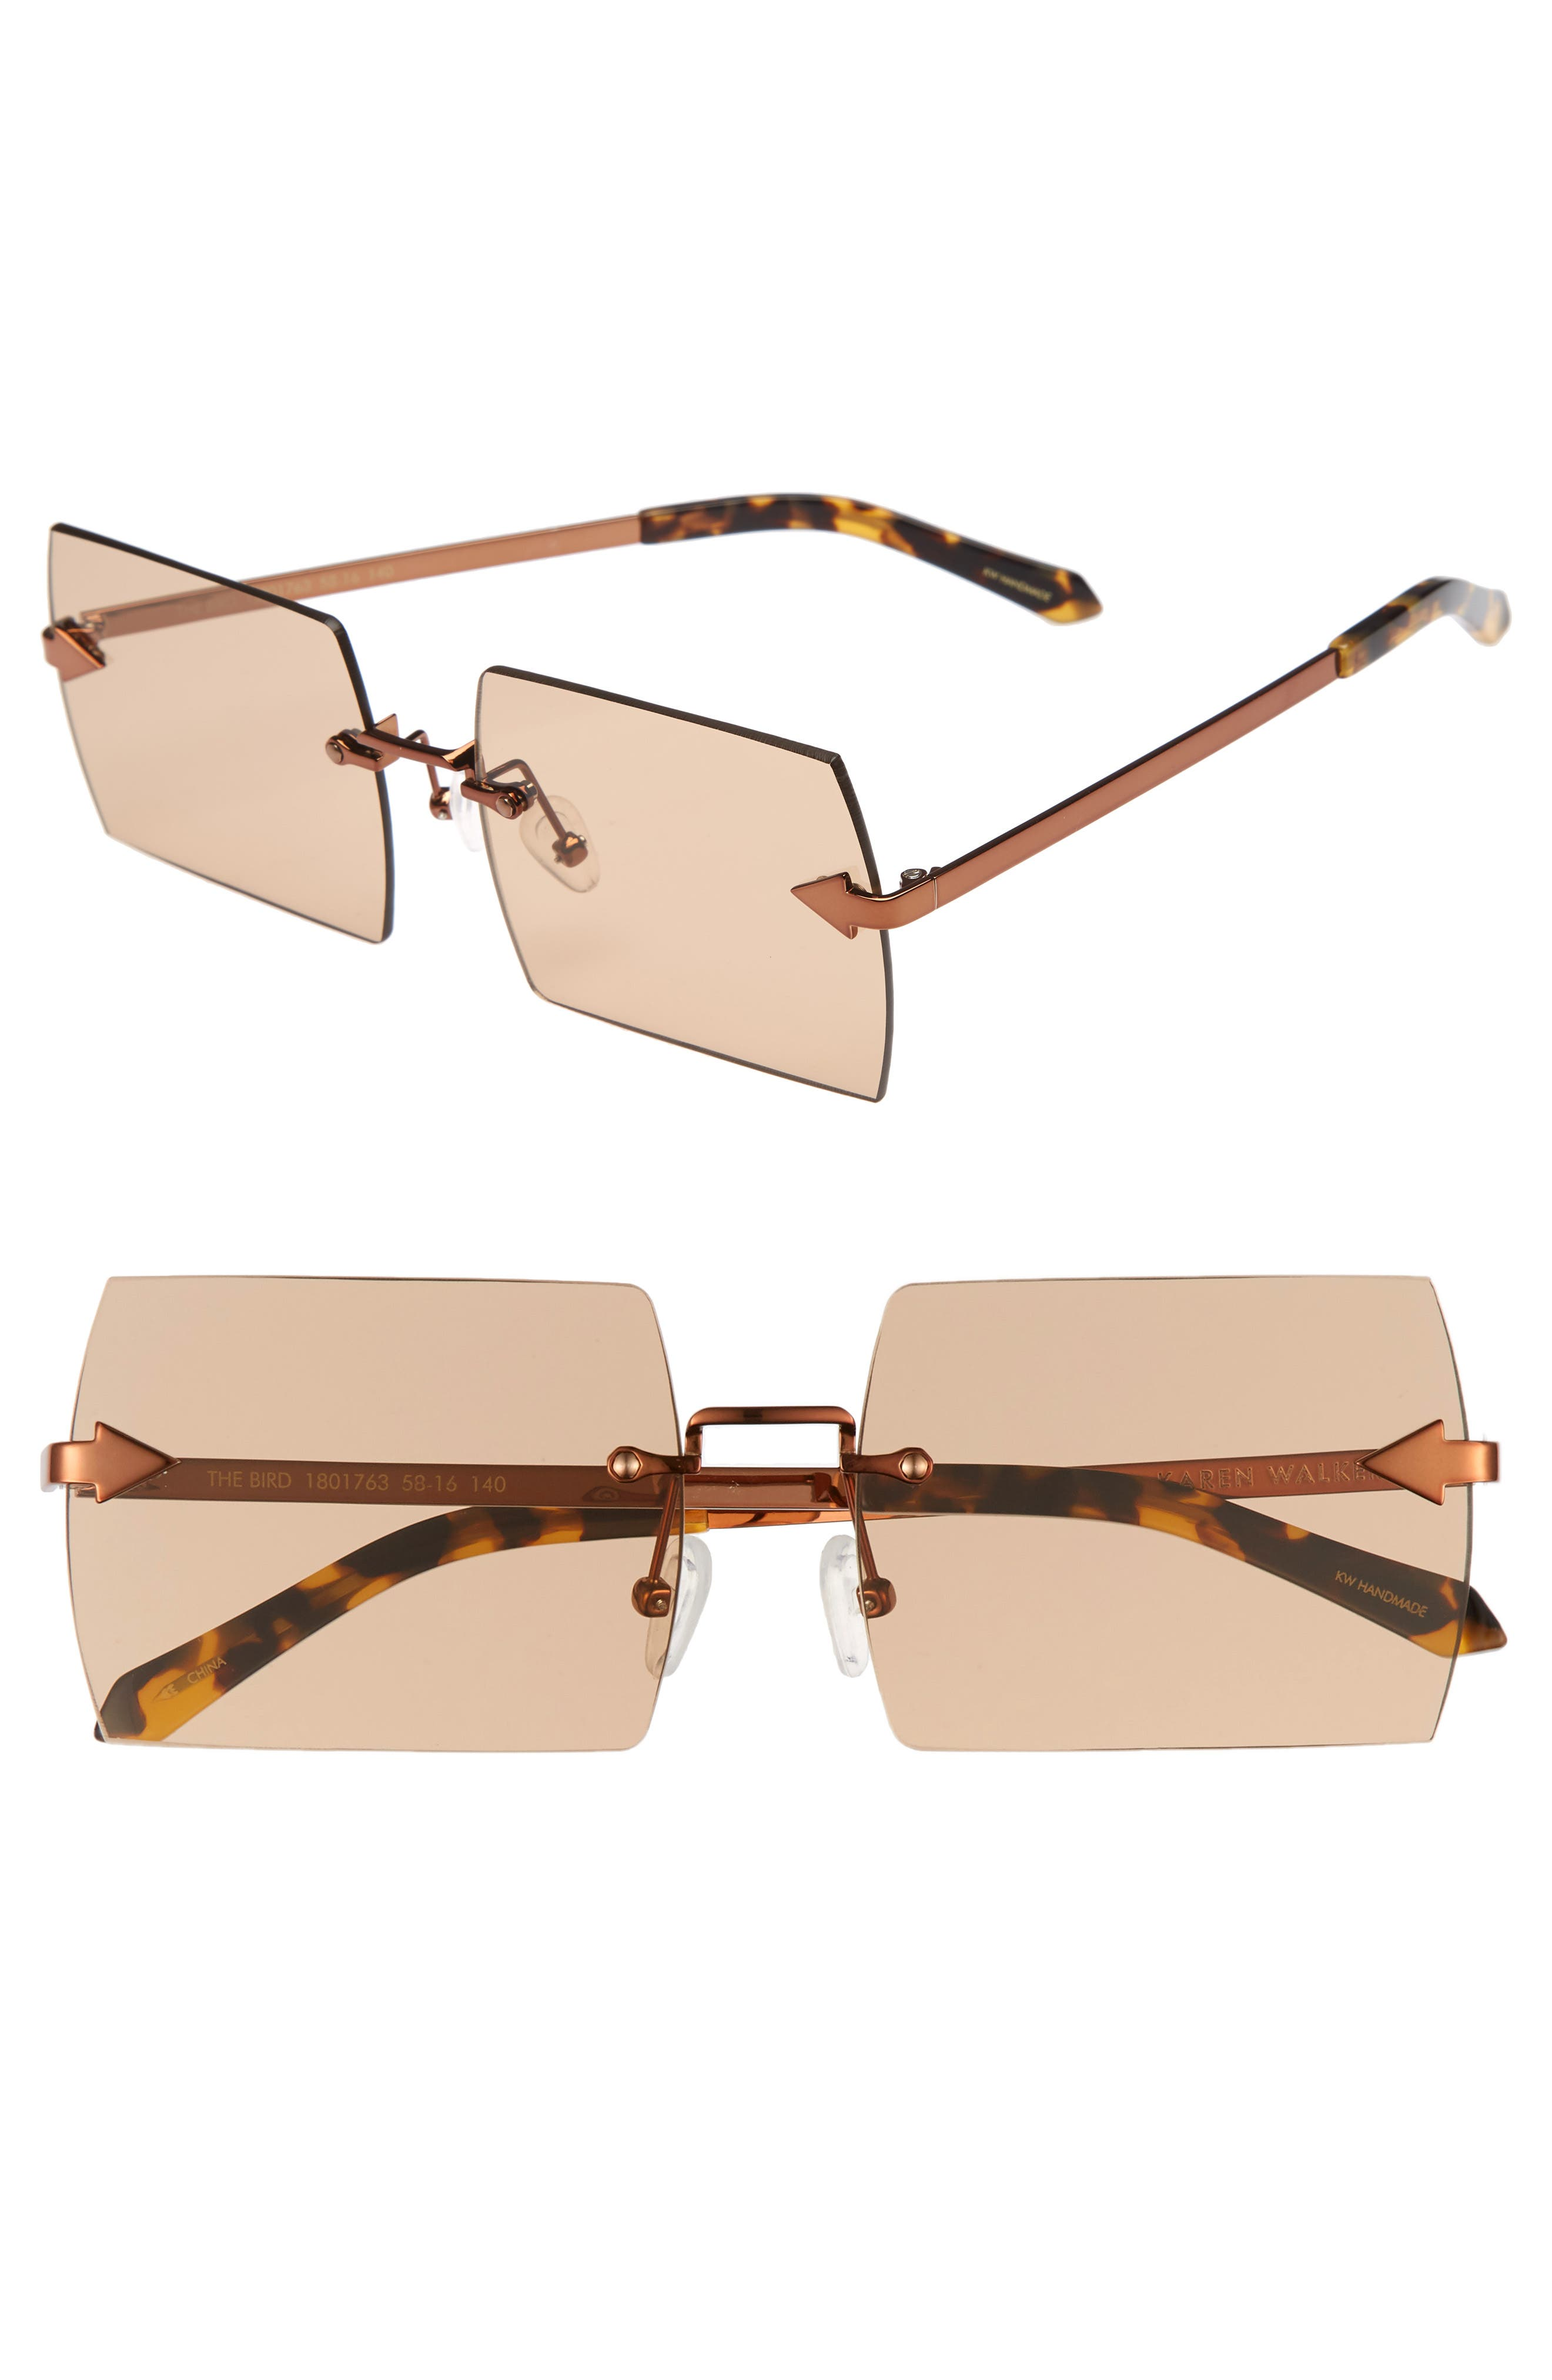 The Bird 58mm Rimless Sunglasses,                             Main thumbnail 1, color,                             LIGHT BROWN